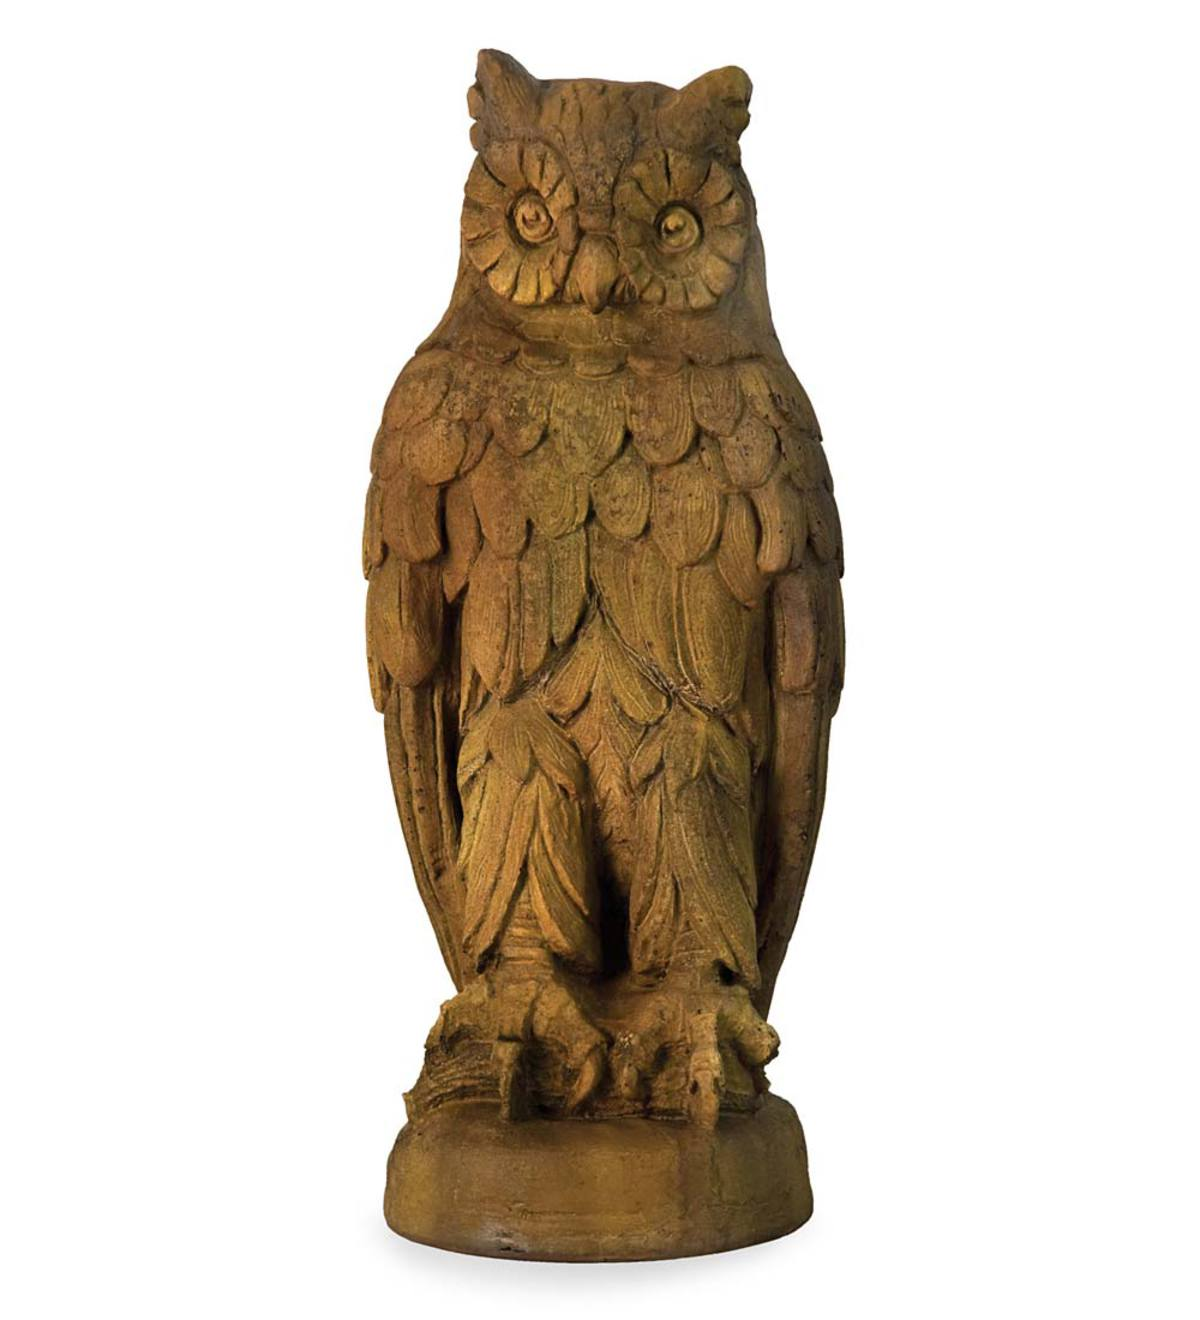 Perched Owl Garden Statue